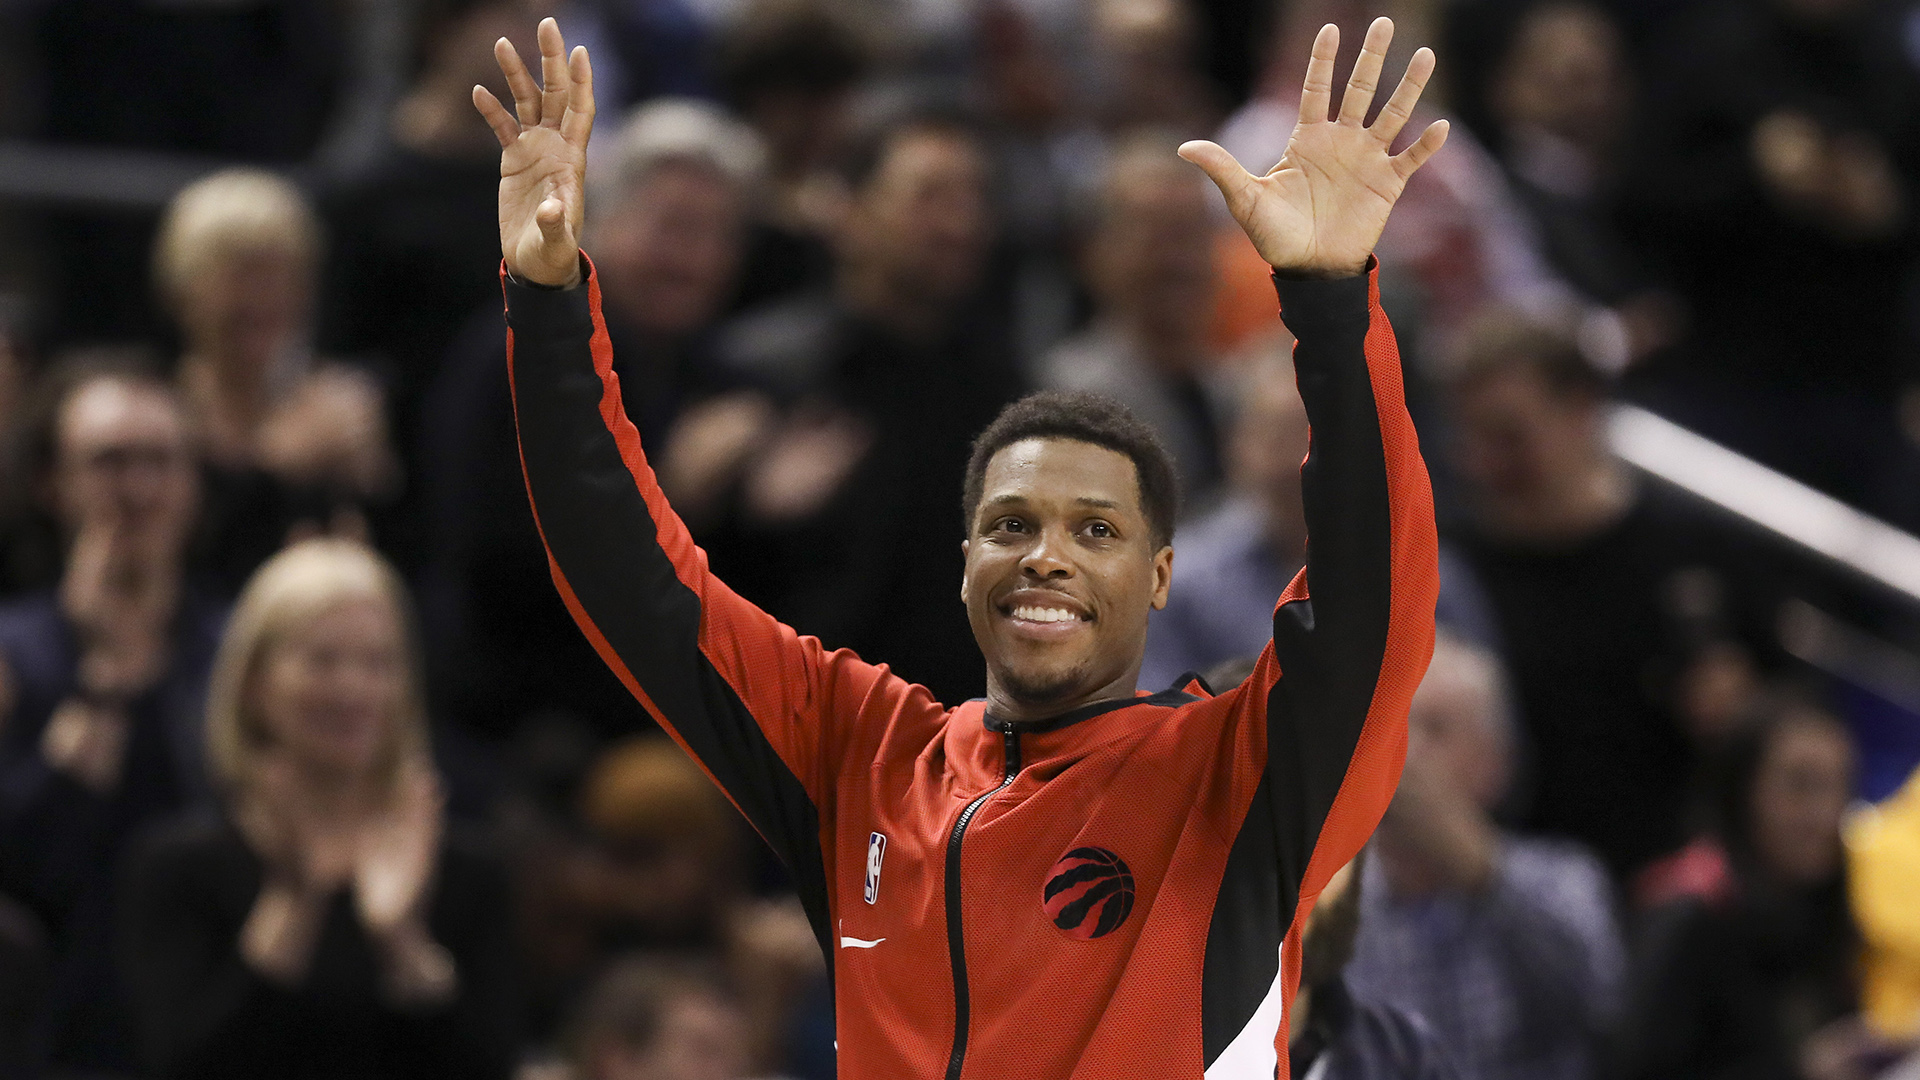 'Thank you Toronto, thank you Canada': Kyle Lowry posts emotional farewell to Raptors